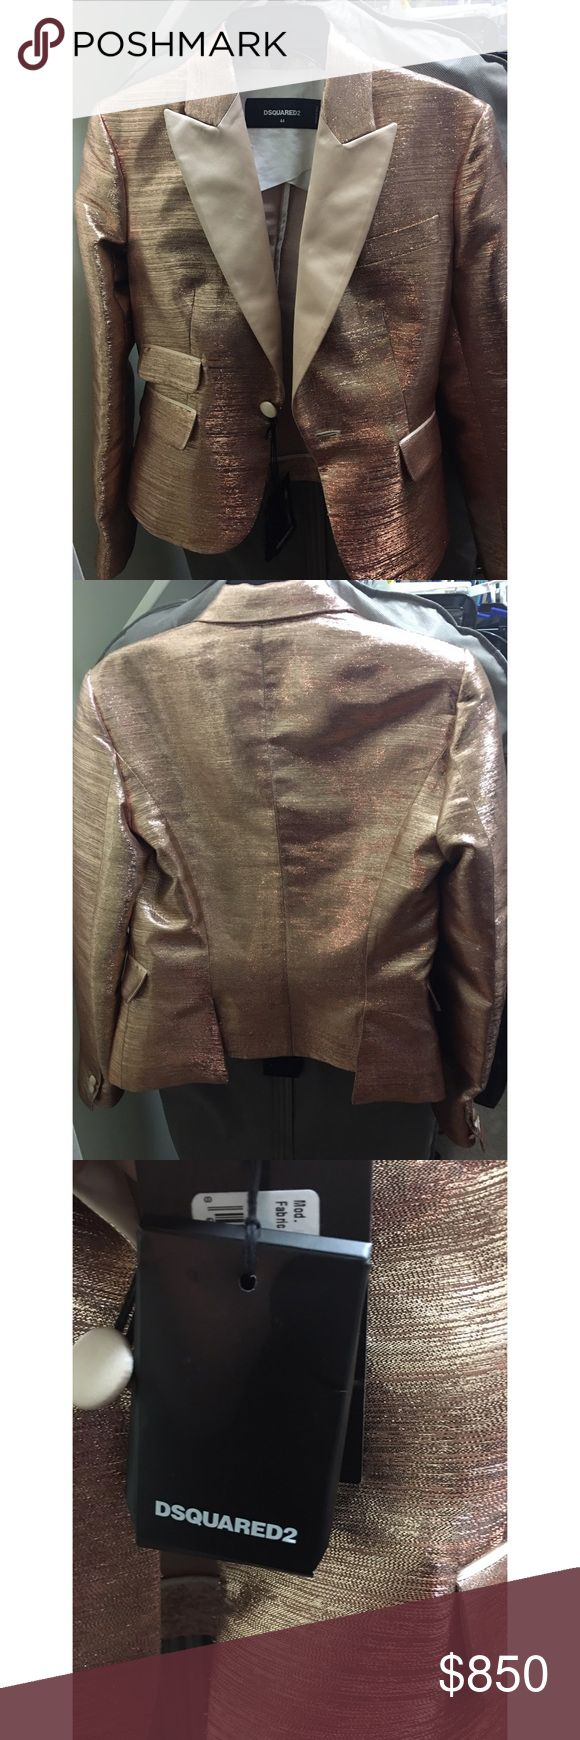 Dsquared2 Women's Suiting Blazer Beautiful blazer with rose gold metallic material. DSQUARED Jackets & Coats Blazers